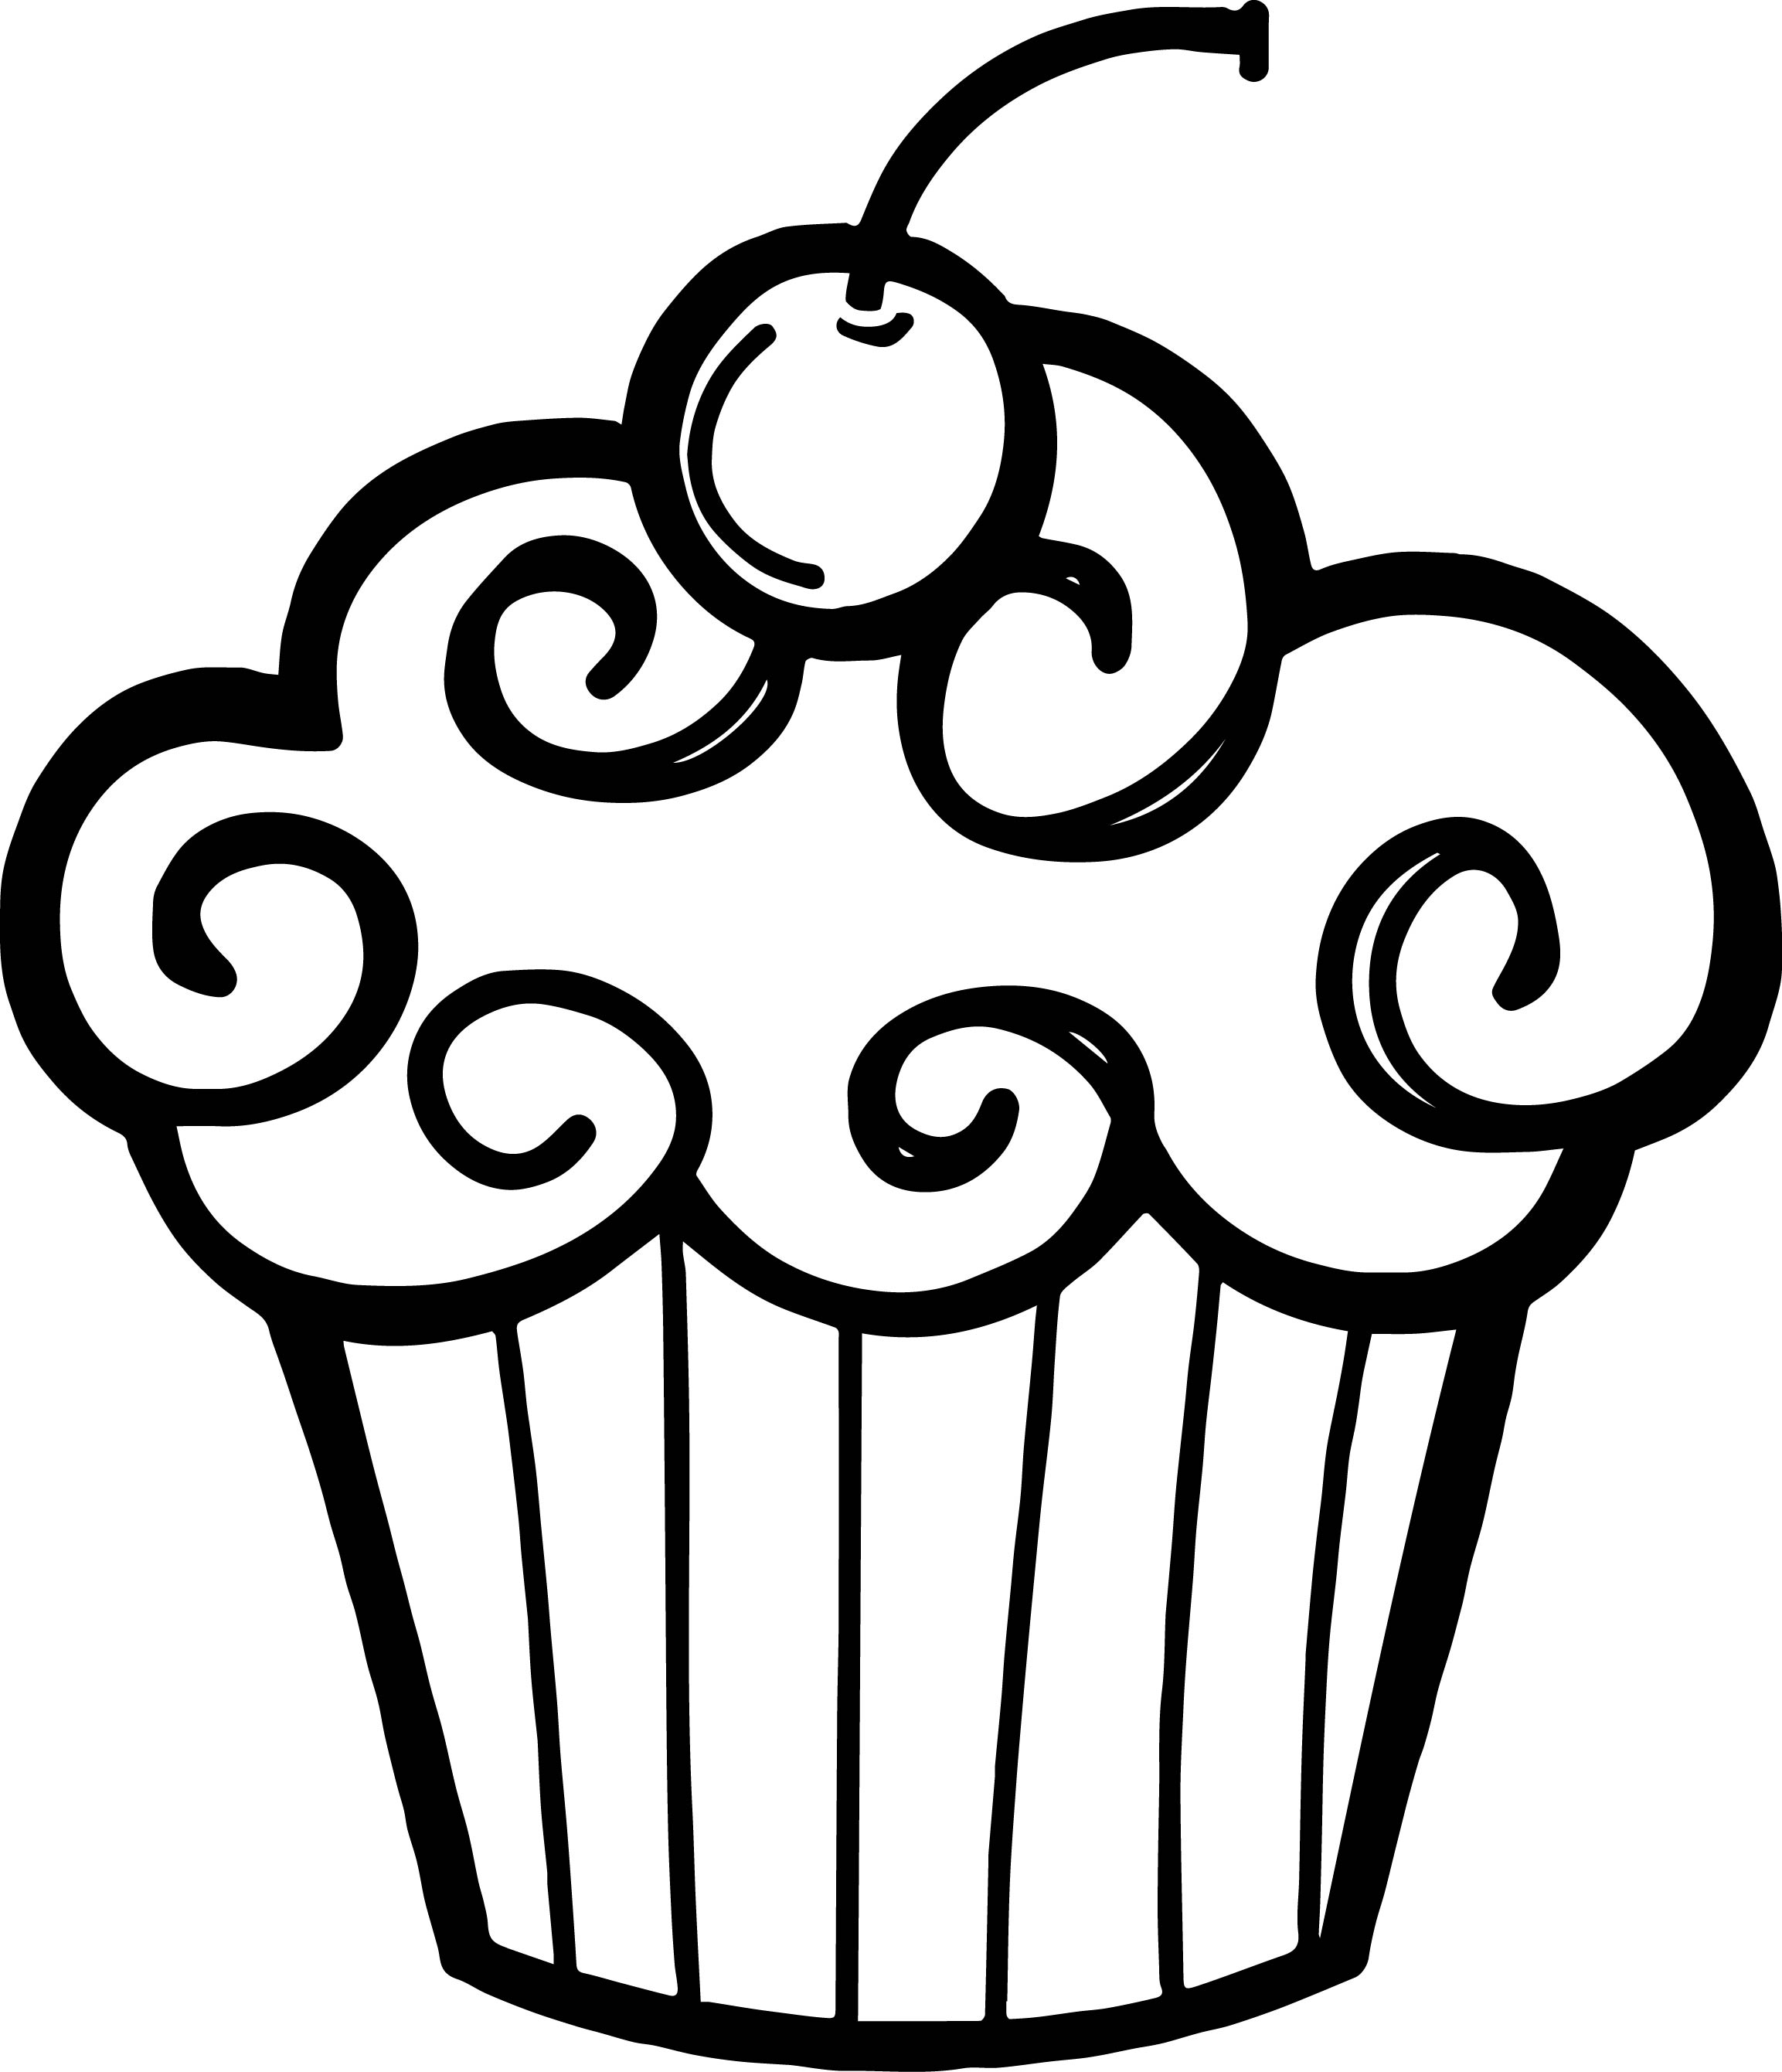 Cupcake Black And White Cupcake Clipart 3